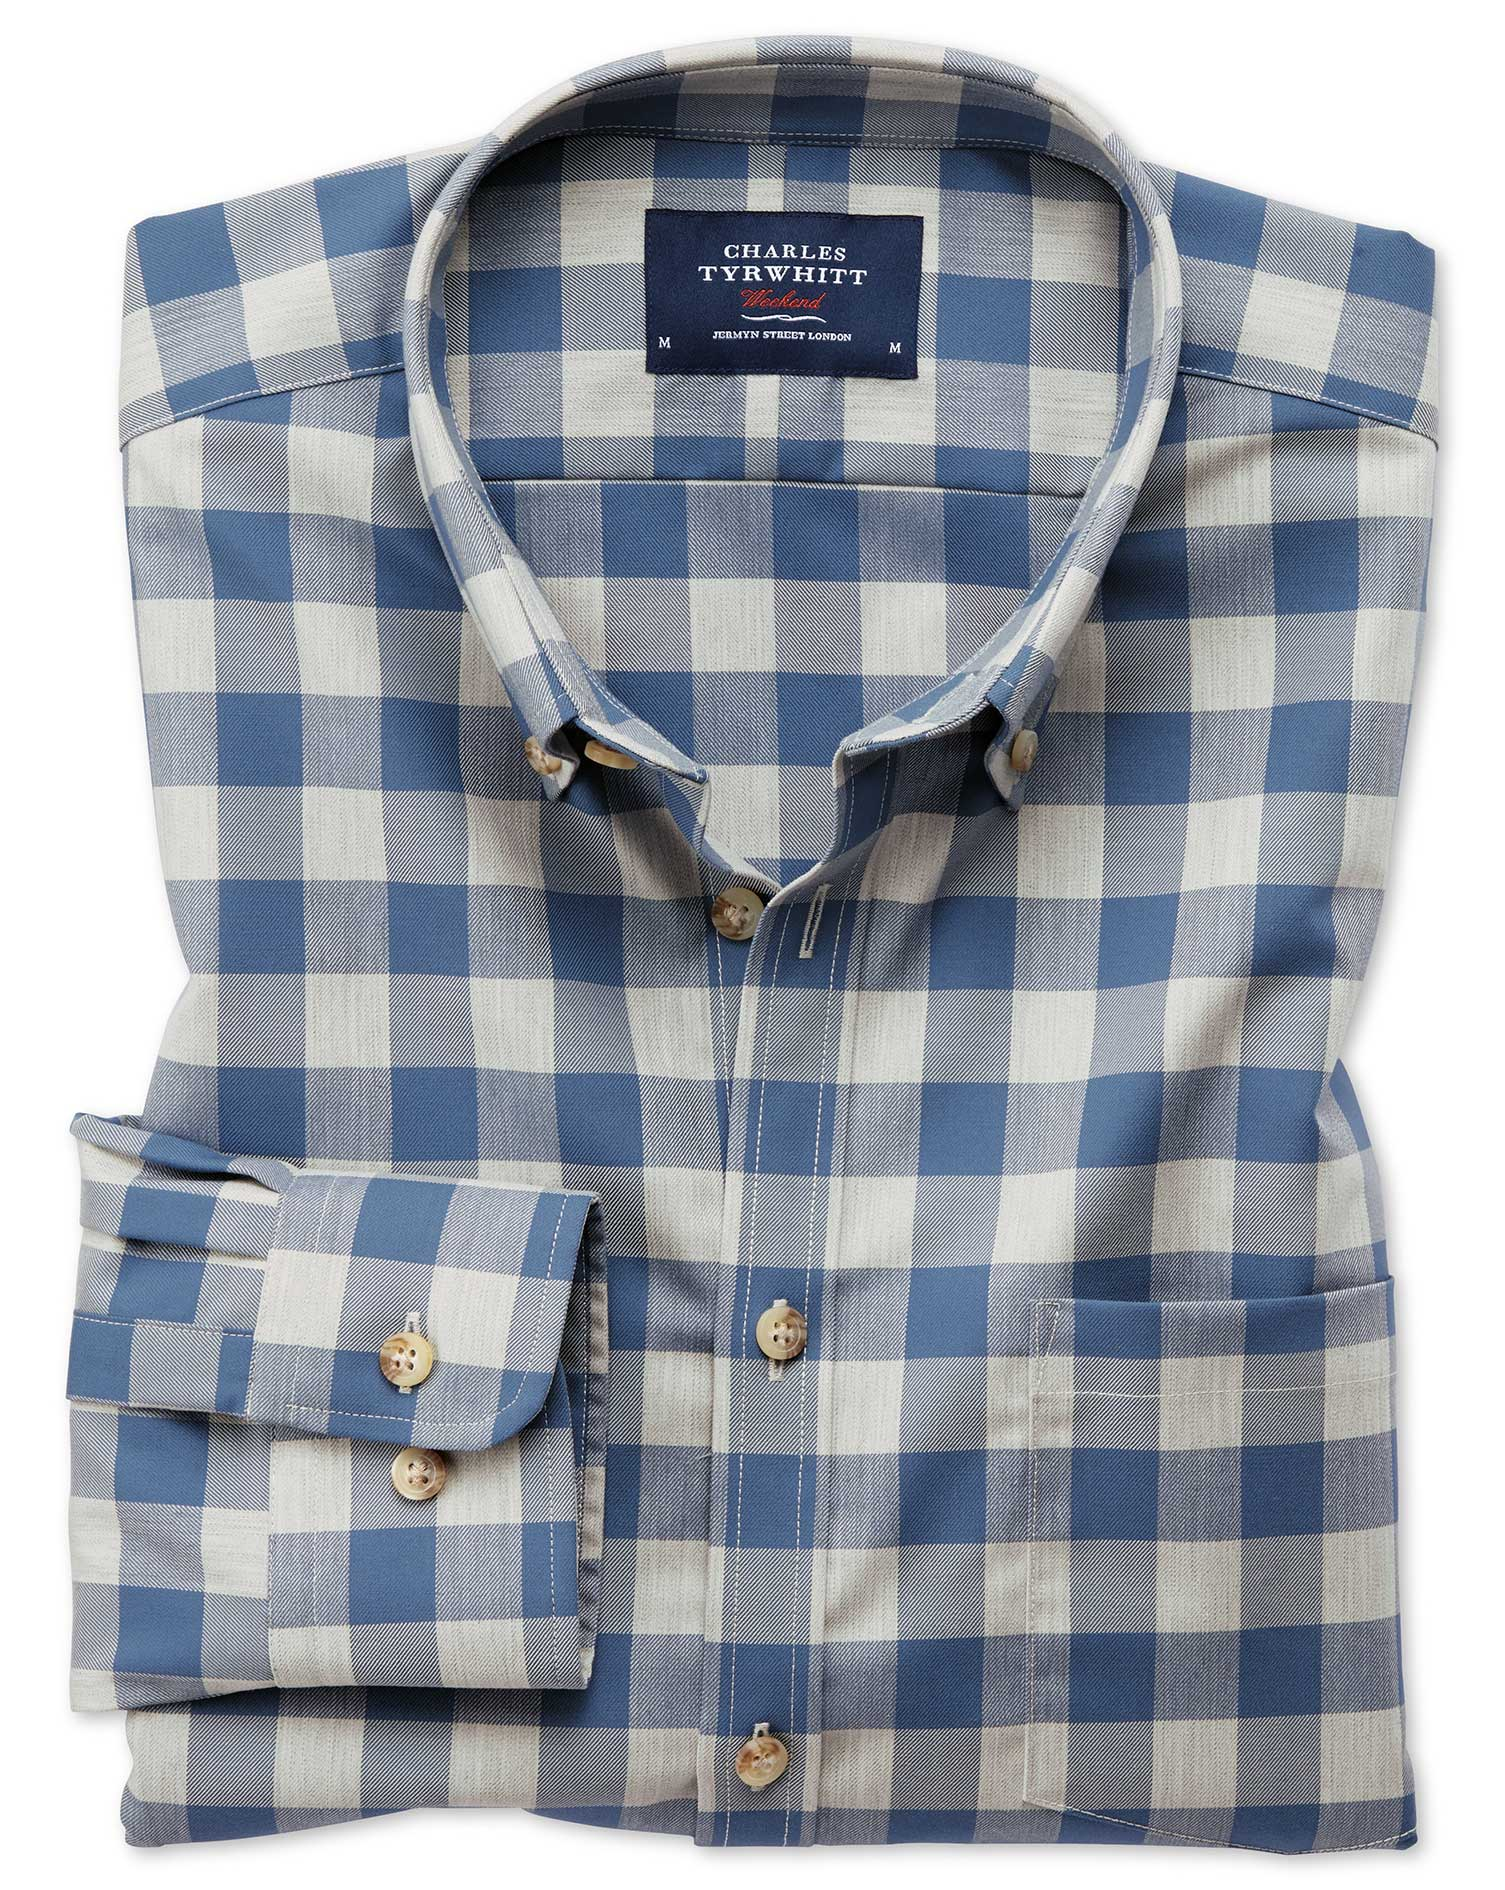 Extra Slim Fit Button-Down Non-Iron Twill Blue and Grey Check Cotton Shirt Single Cuff Size Medium b